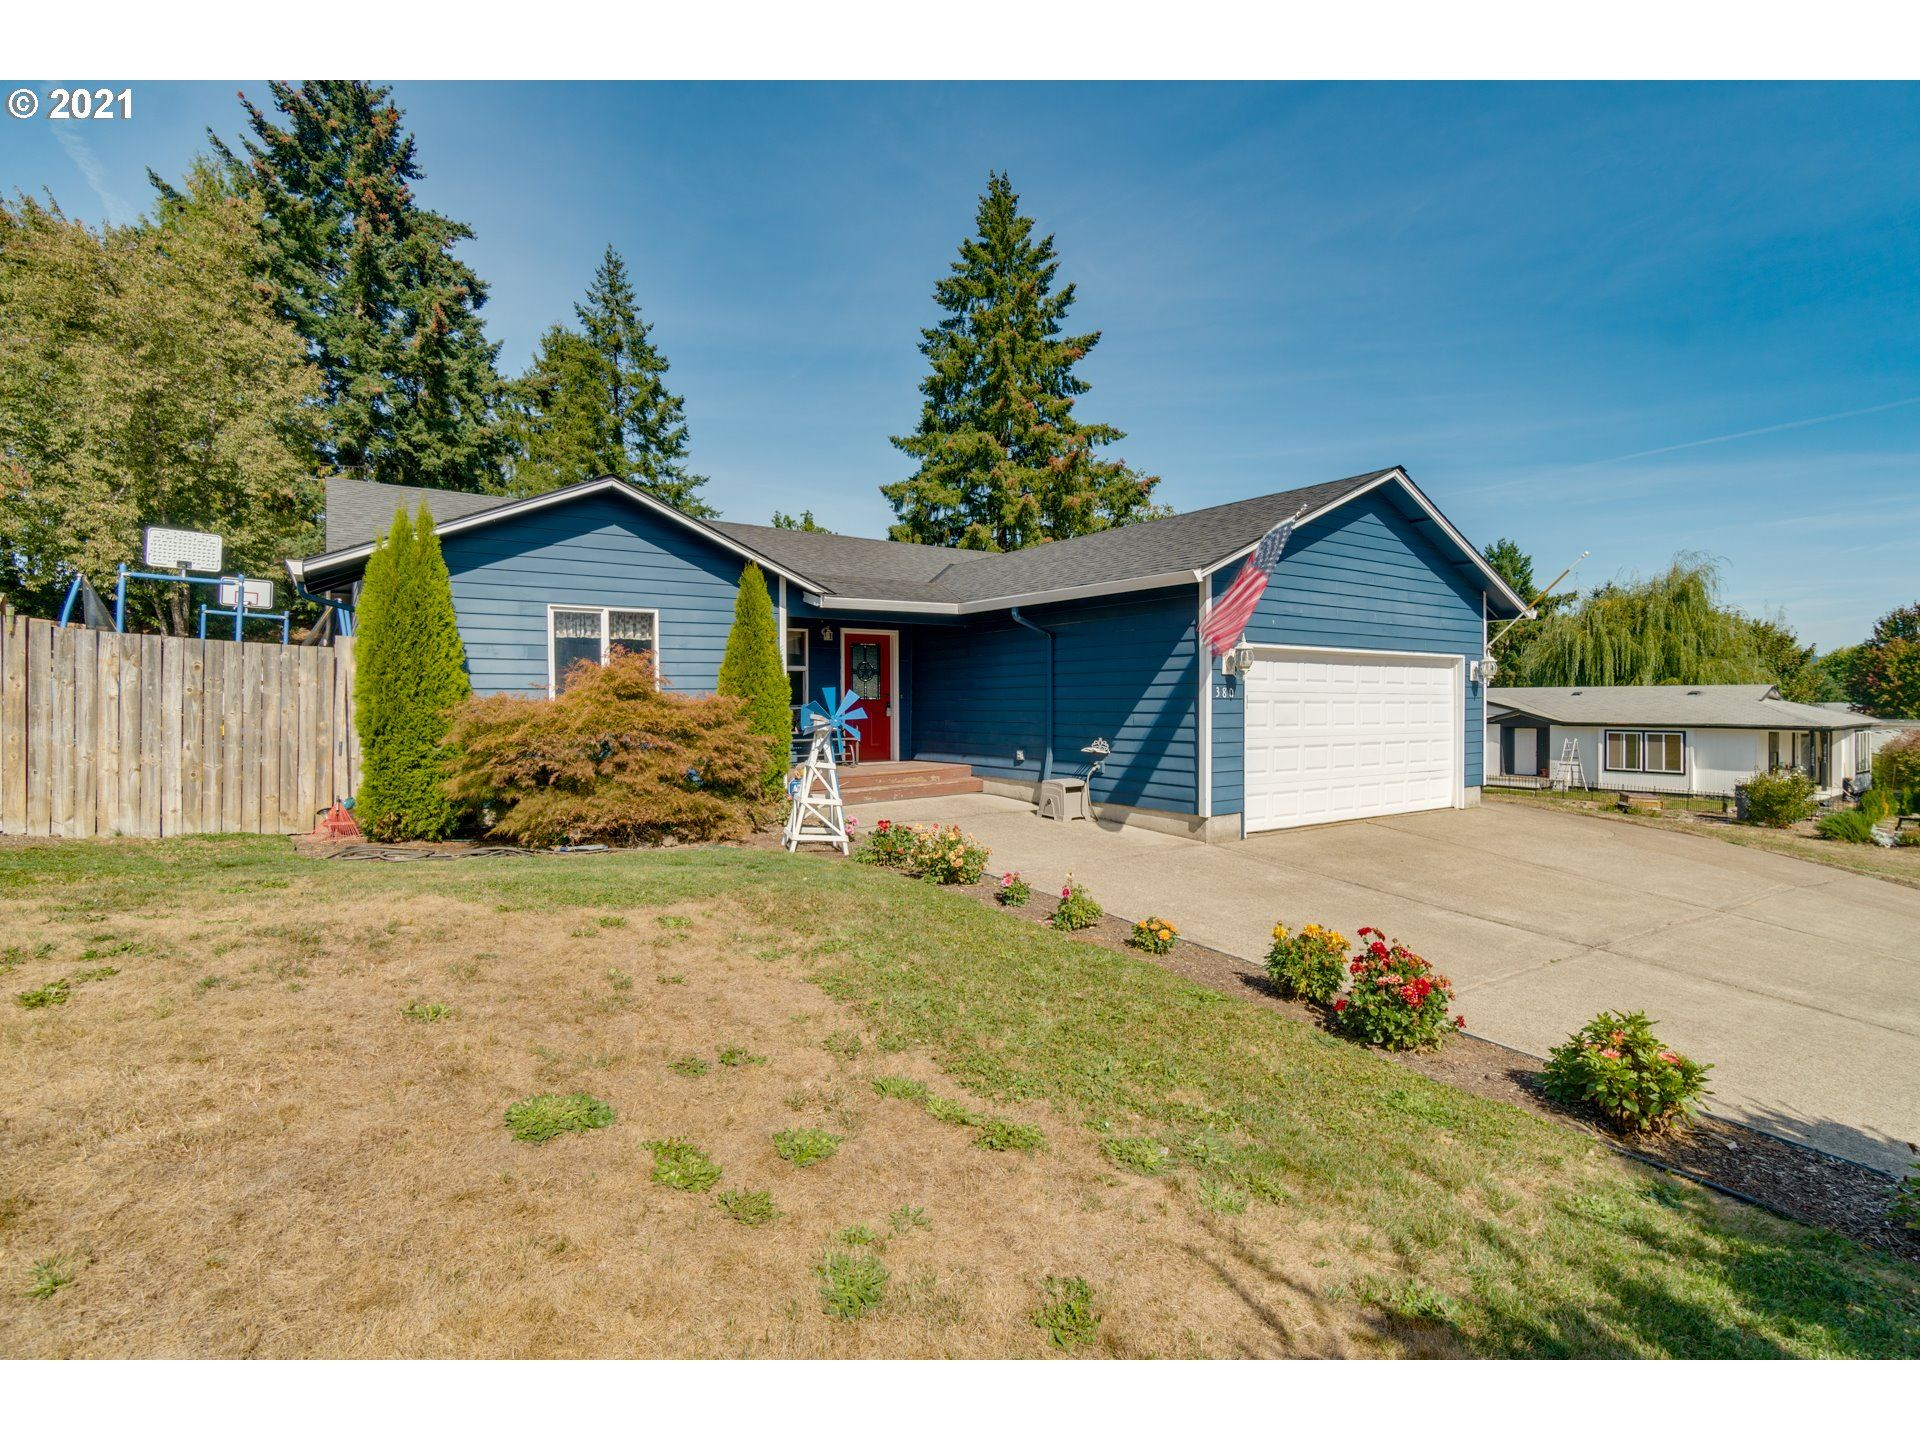 Photo of 380 E 2ND ST, Yamhill, OR 97148 (MLS # 21307293)